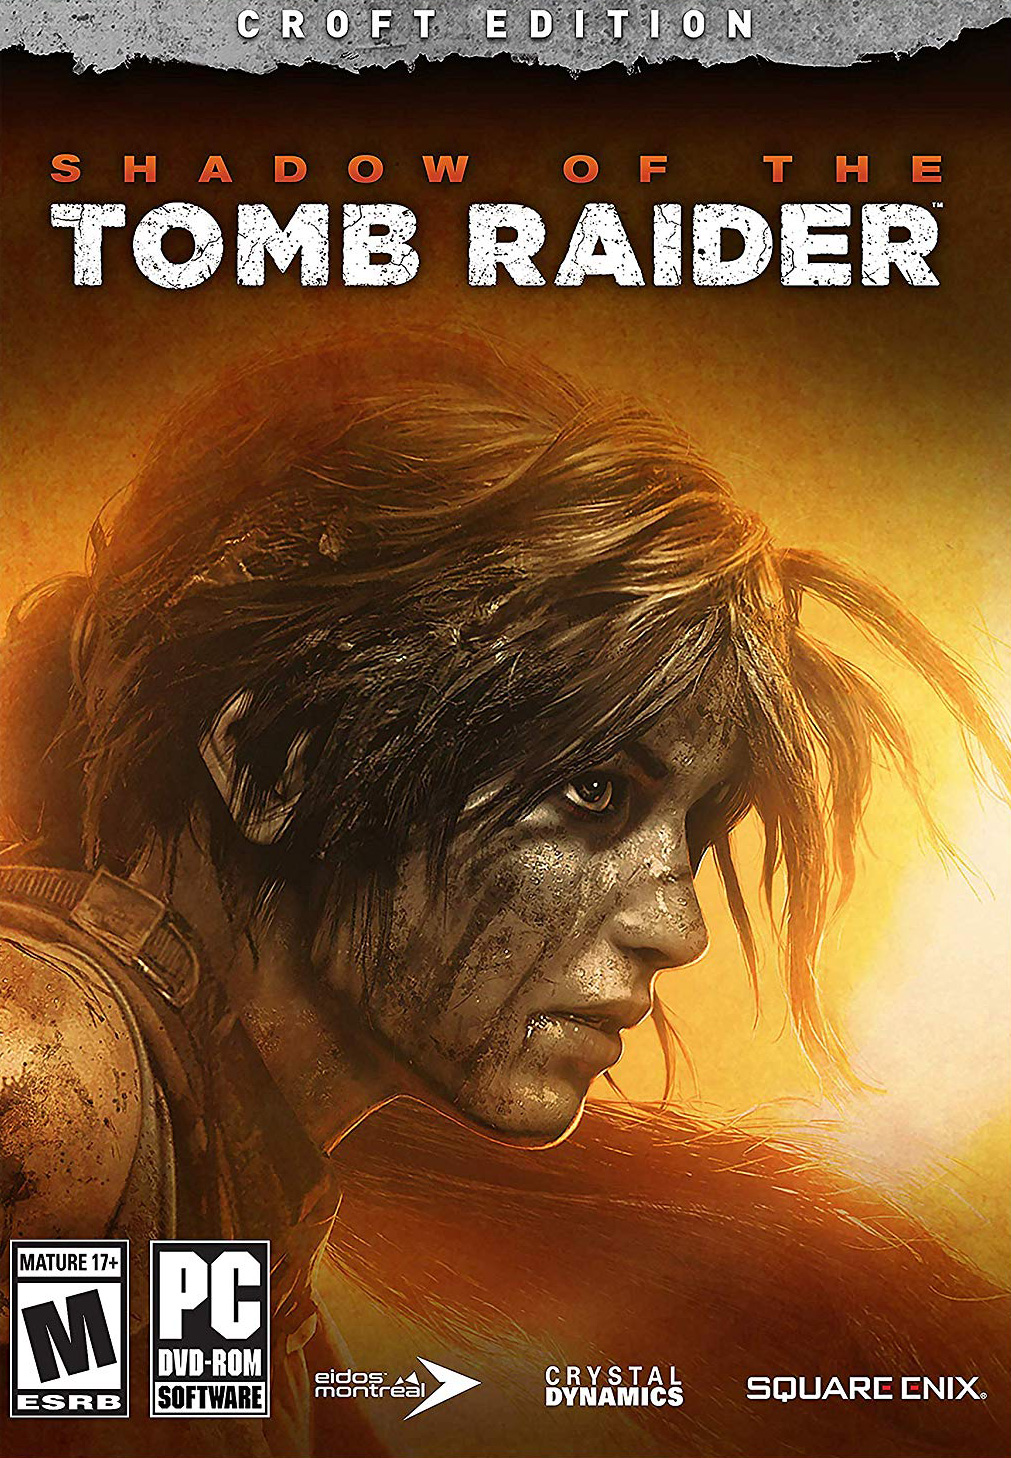 https://img5.downloadha.com/hosein/files/2018/11/Shadow-of-the-Tomb-Raider-pc-cover-large.jpg